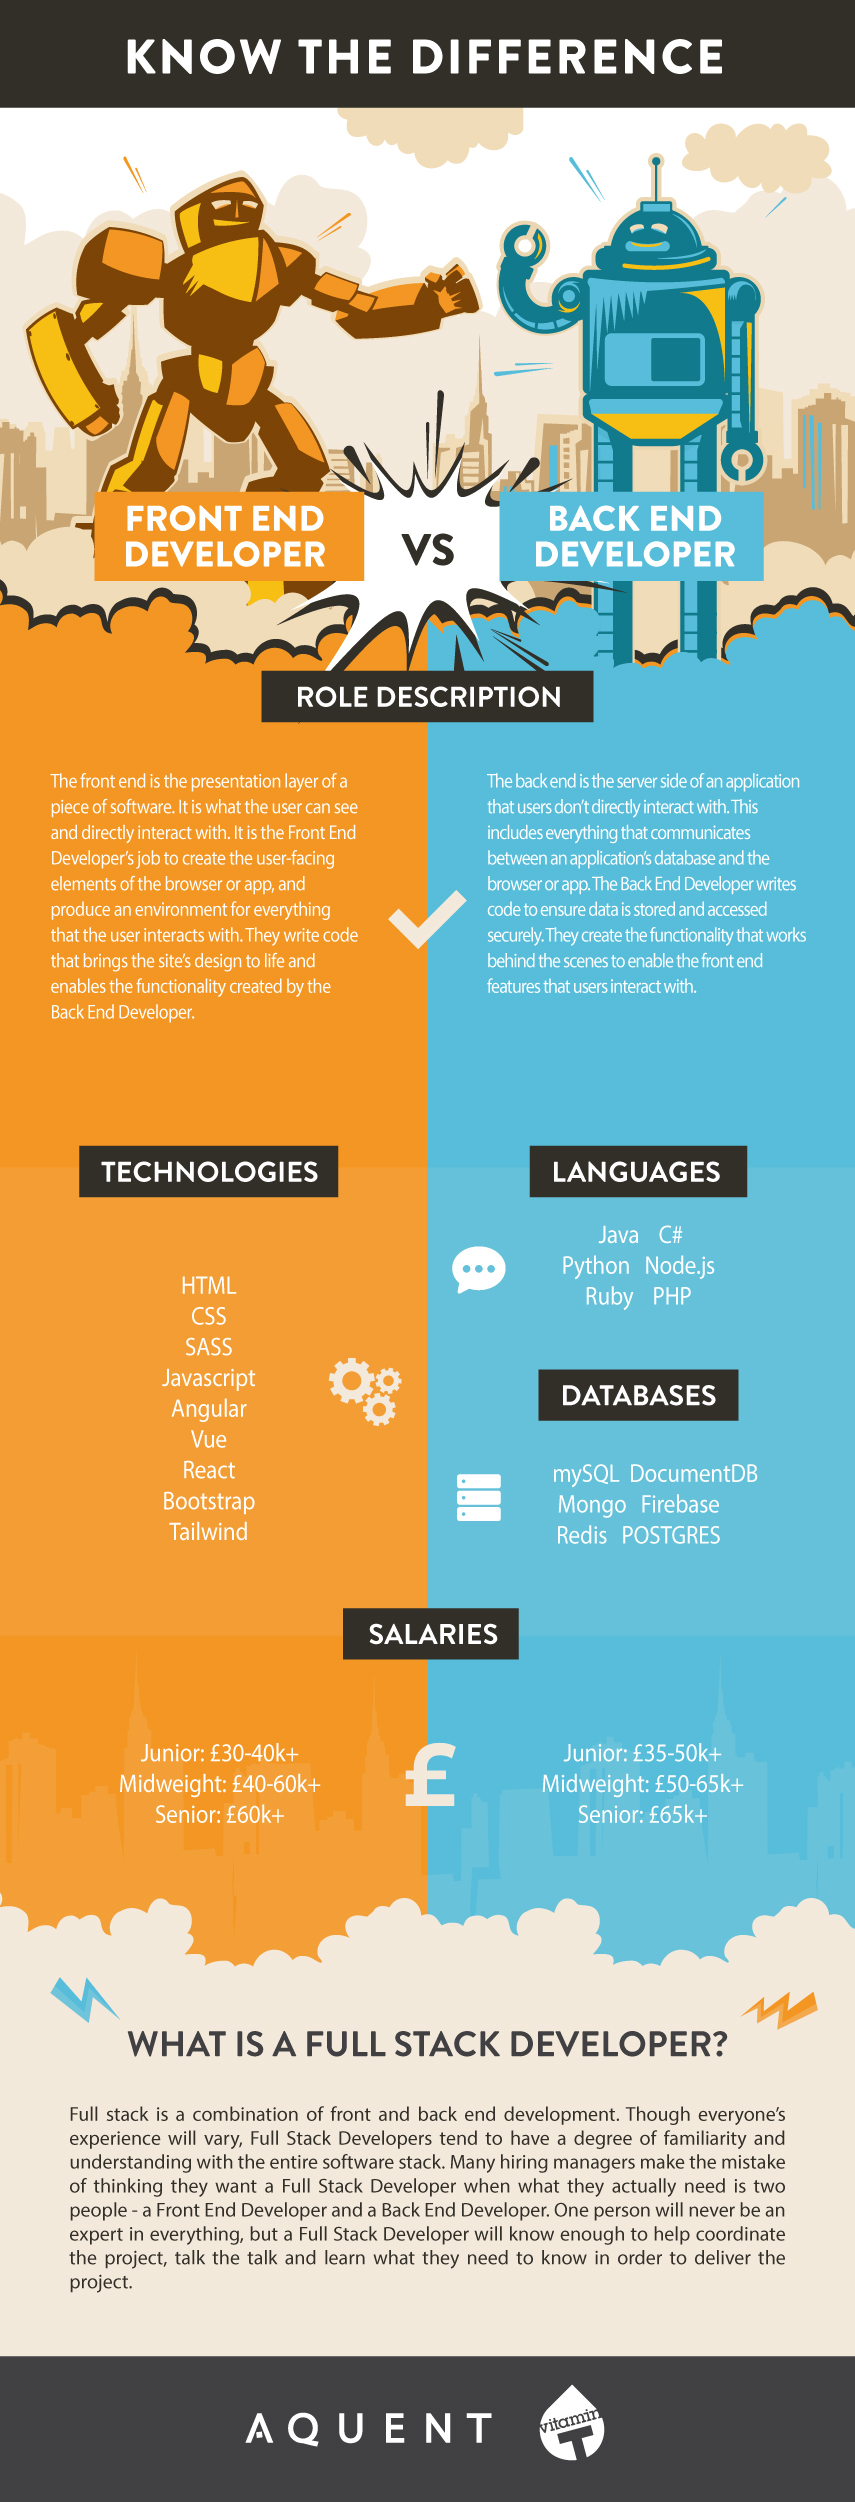 Know-The-Difference-Front-End-Developer-vs-Back-End-Developer-Infographic